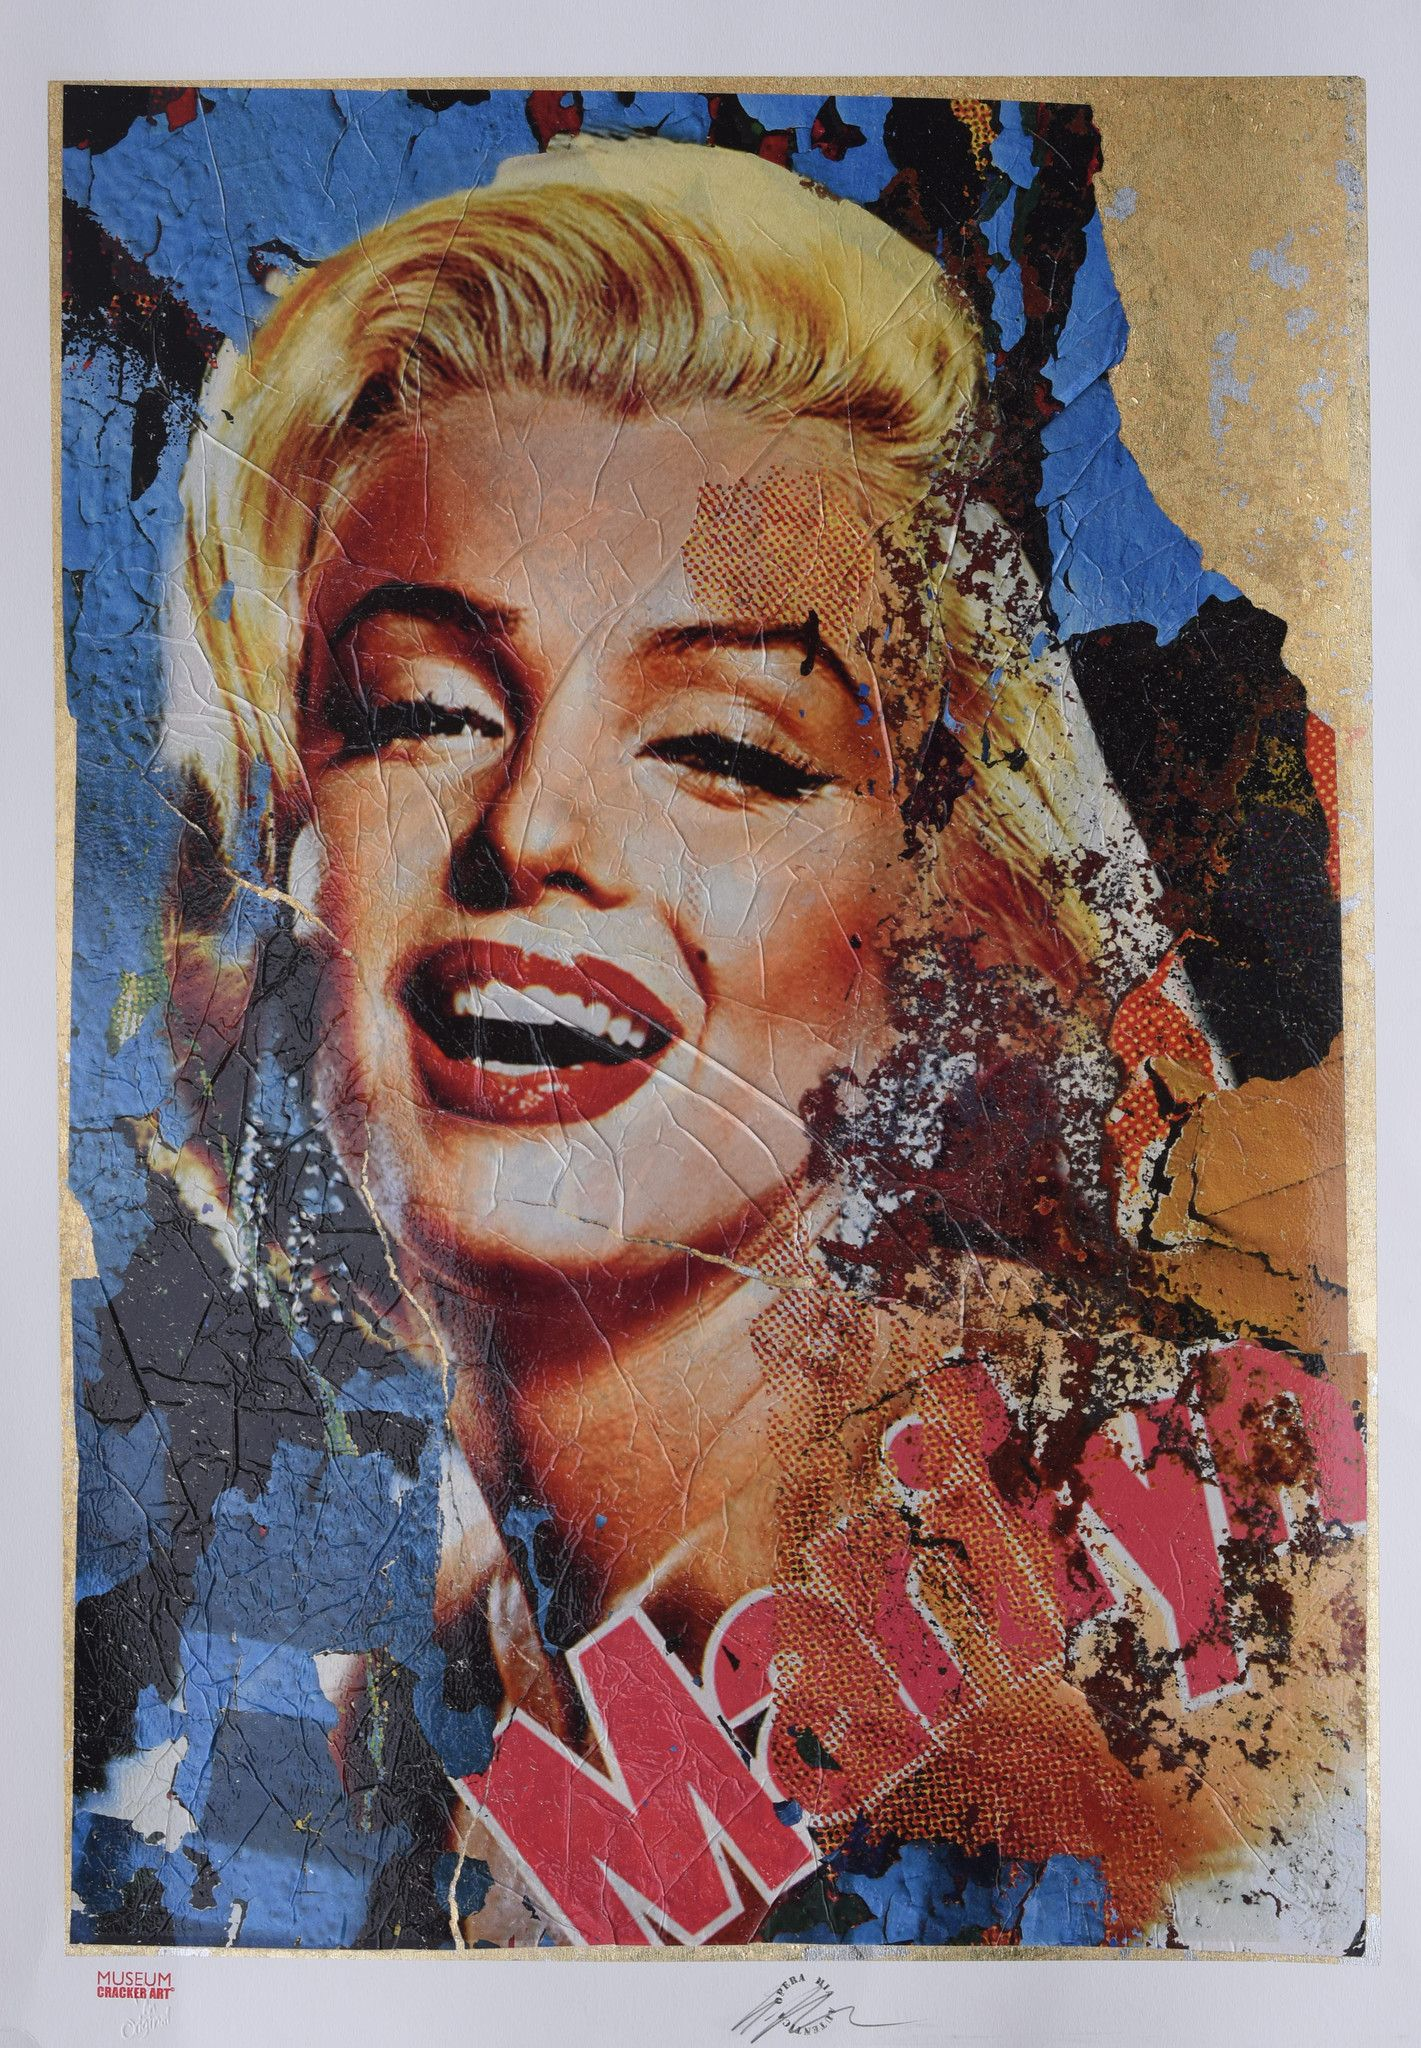 GRAFICA GIULIANO GRITTINI ' MARILYN 5 '  dimensioni L 70 x H 100 cm.